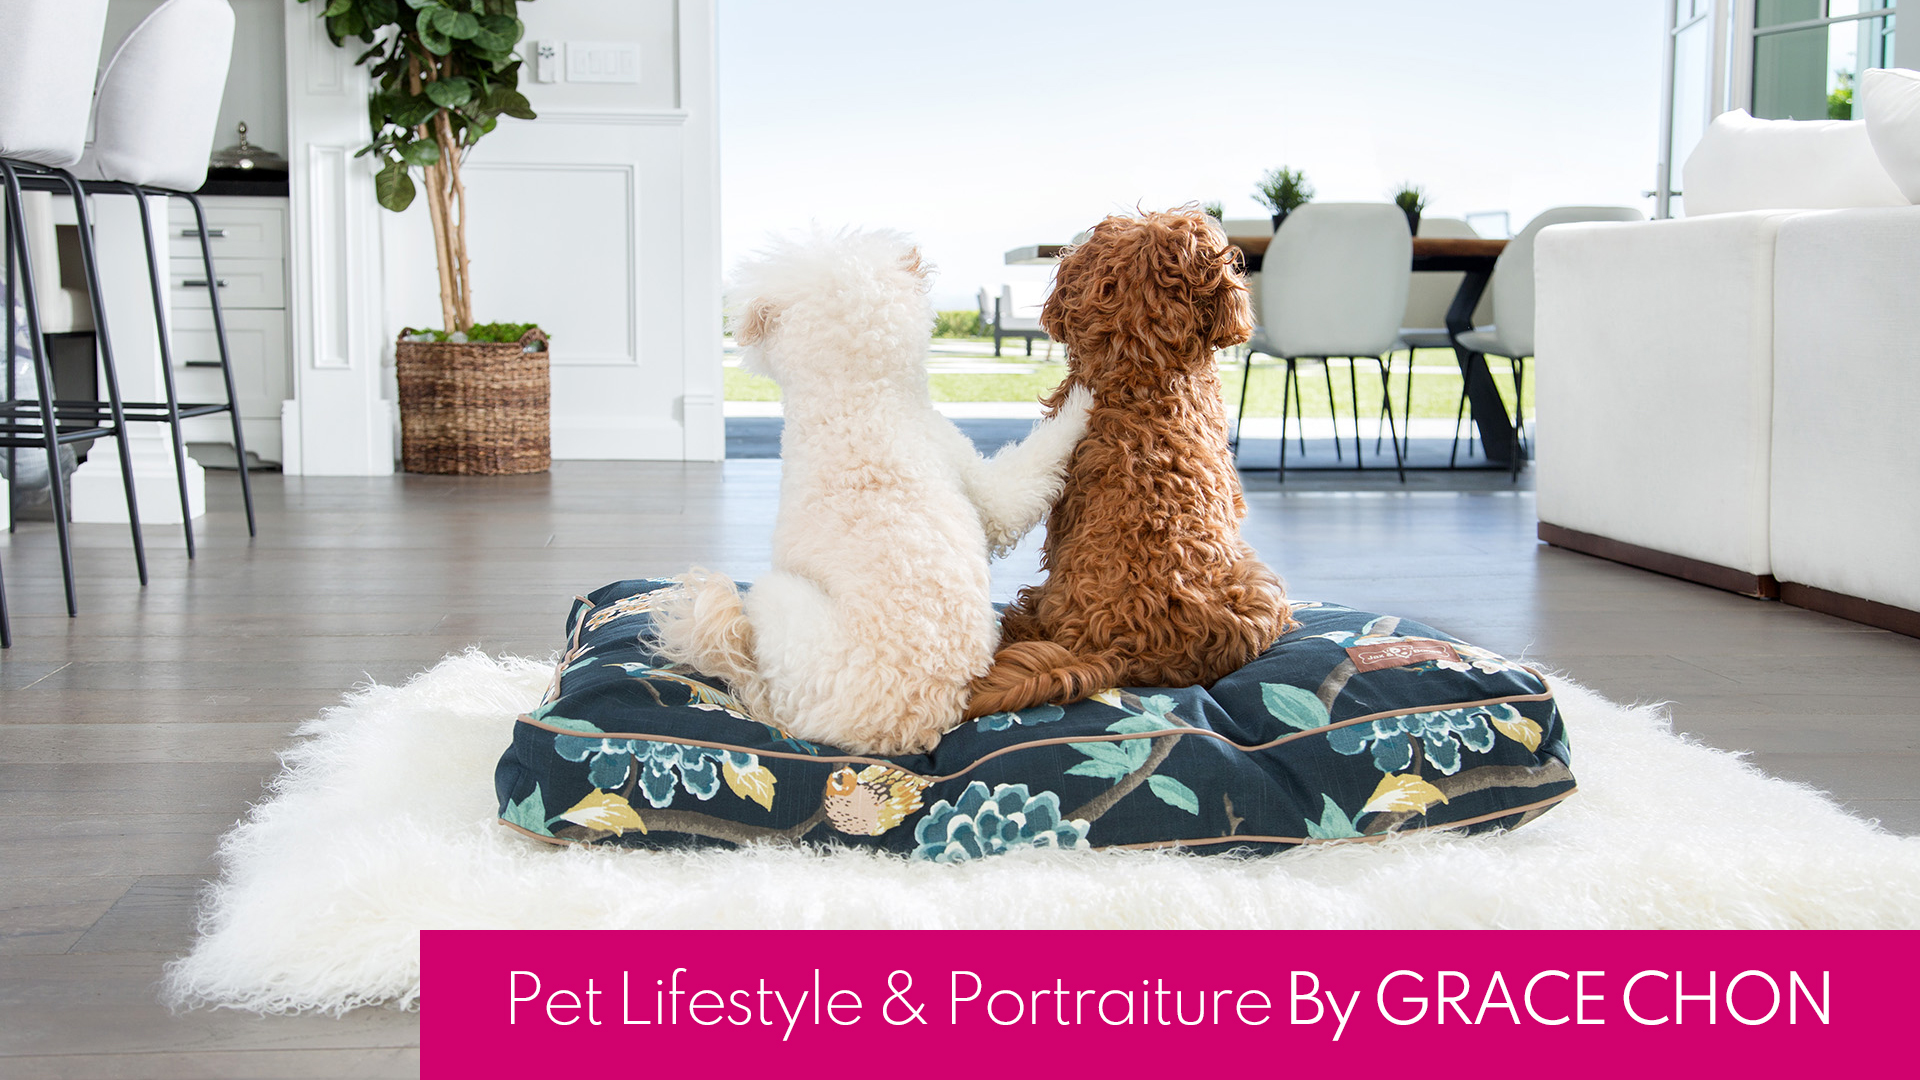 Pet Lifestyle And Portraiture By Grace Chon